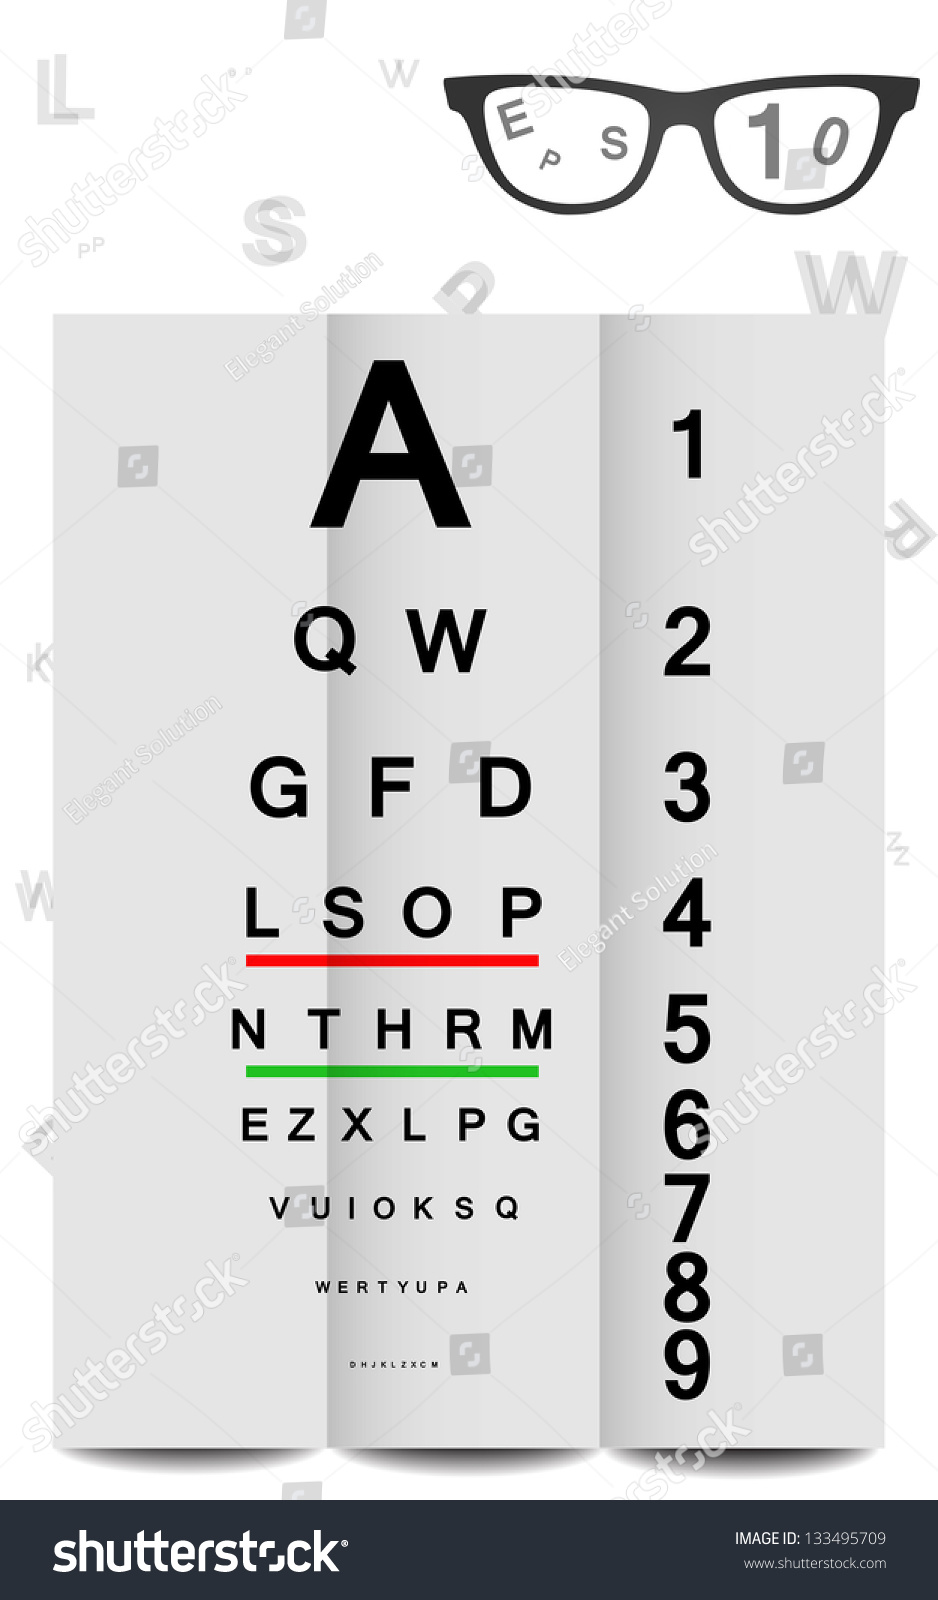 Eye chart in vector format can stock vector 133495709 shutterstock eye chart in vector format can be scaled to any size nvjuhfo Gallery